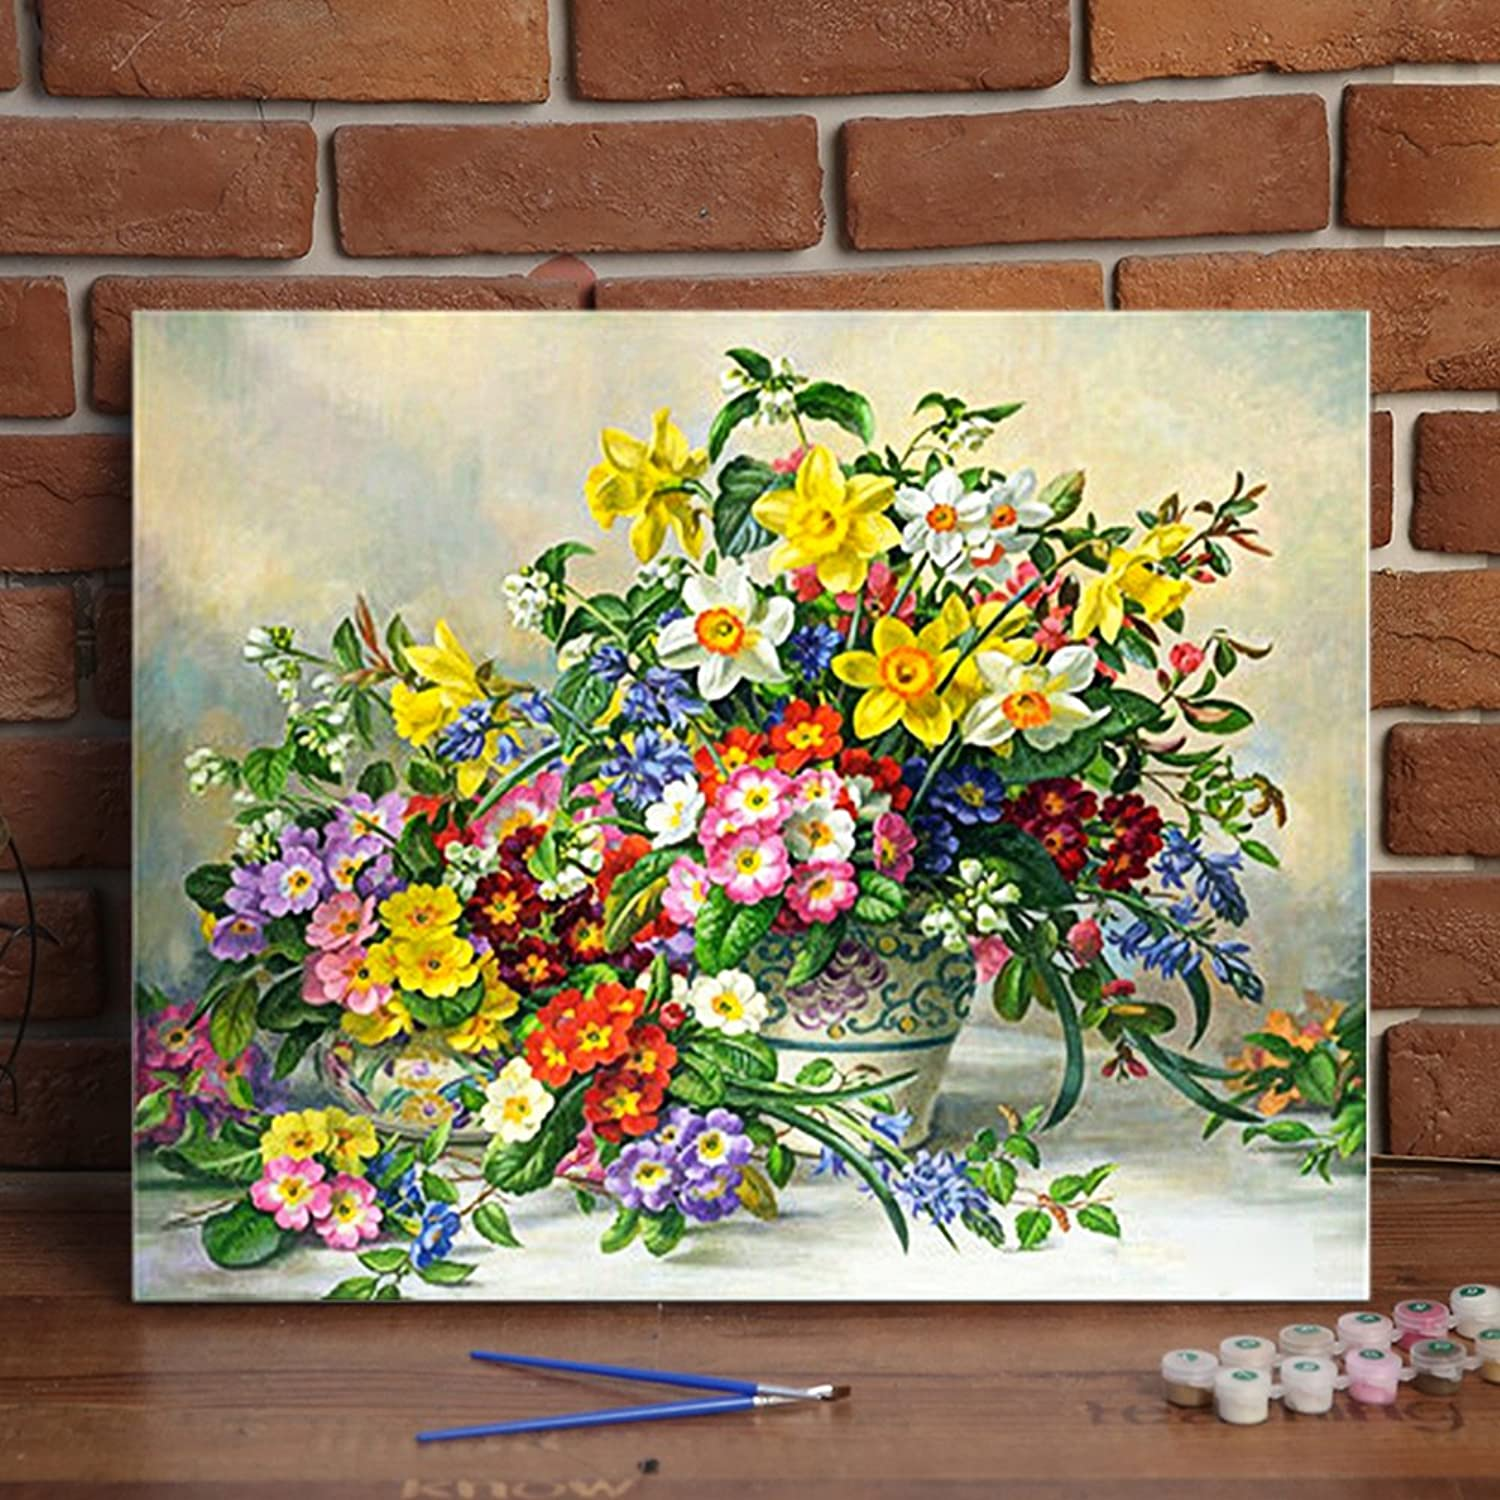 Katosca DIY Oil Paint by Number Kits Mixed Flower Drawing on Canvas Art Craft Wall Decor for Adults 16x20inch